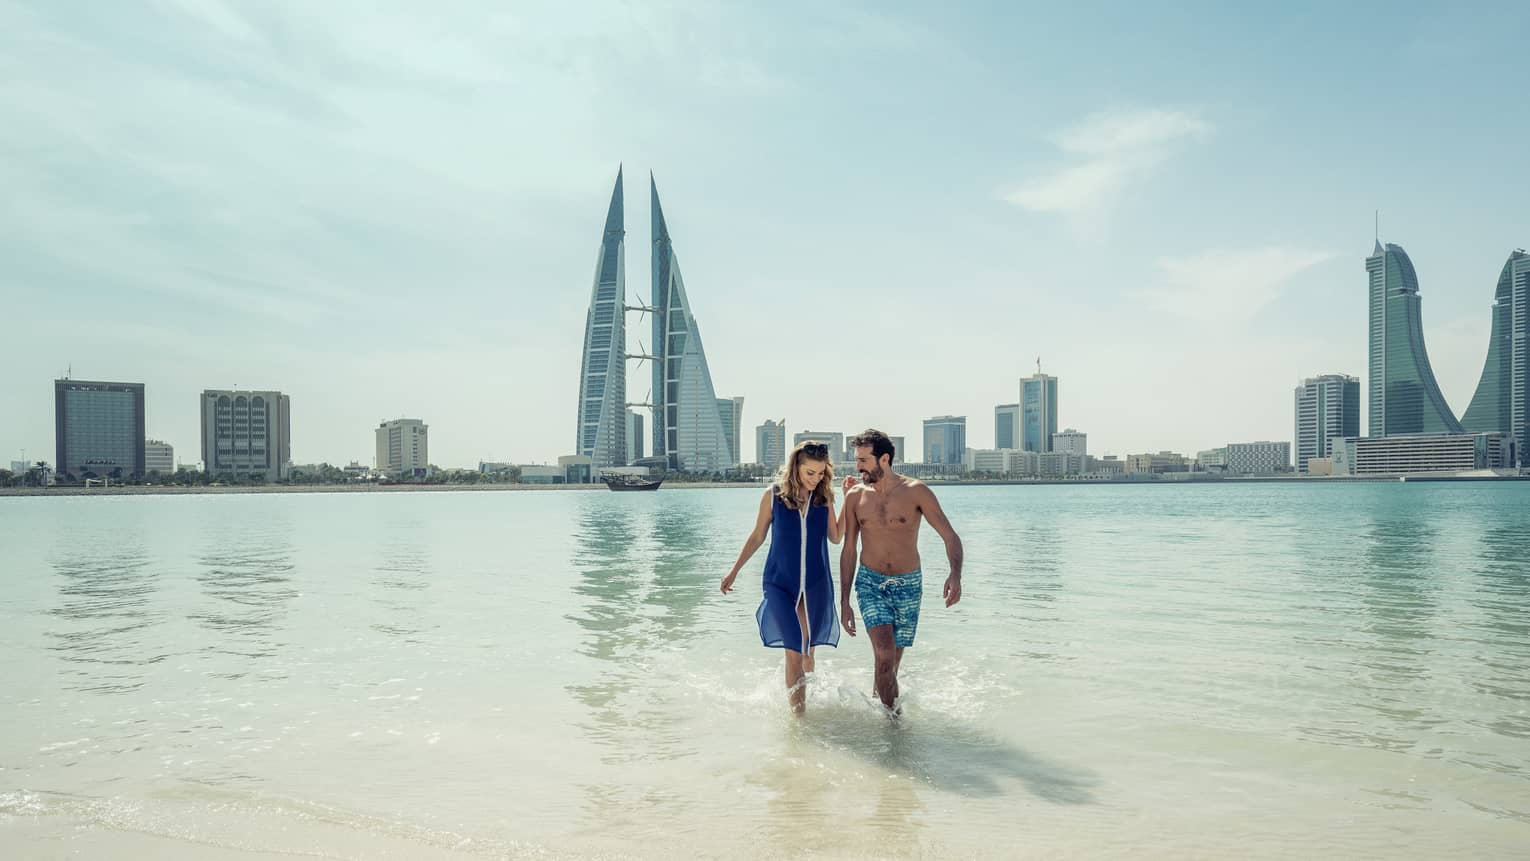 A man and woman run arm in arm through the shallow ocean water with Bahrain Bay skyscrapers in the background